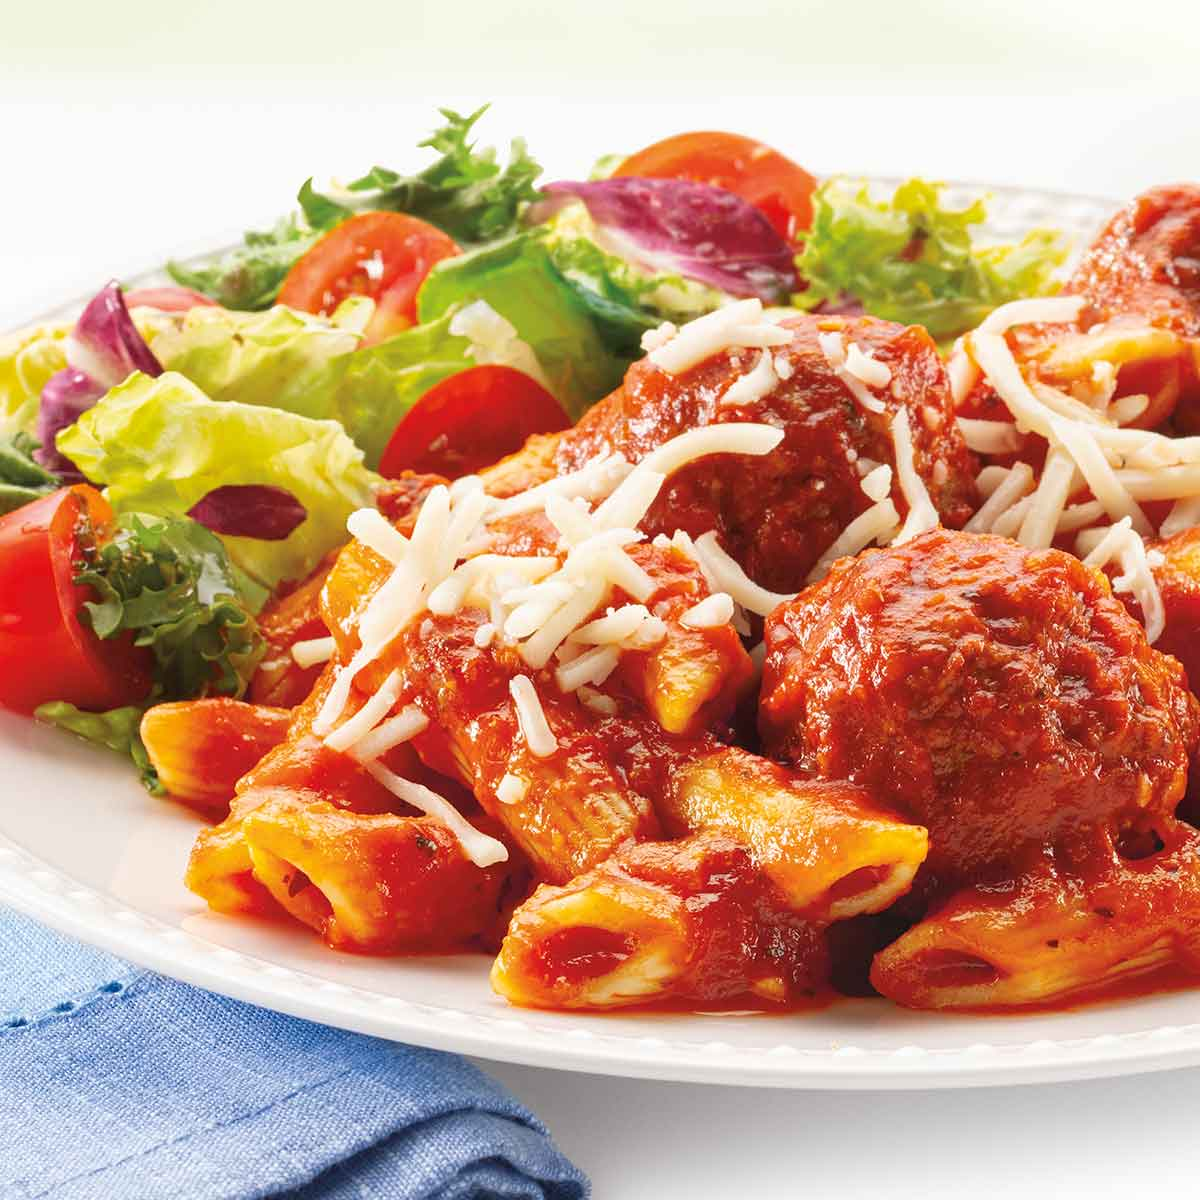 Penne with Meatballs and Salad